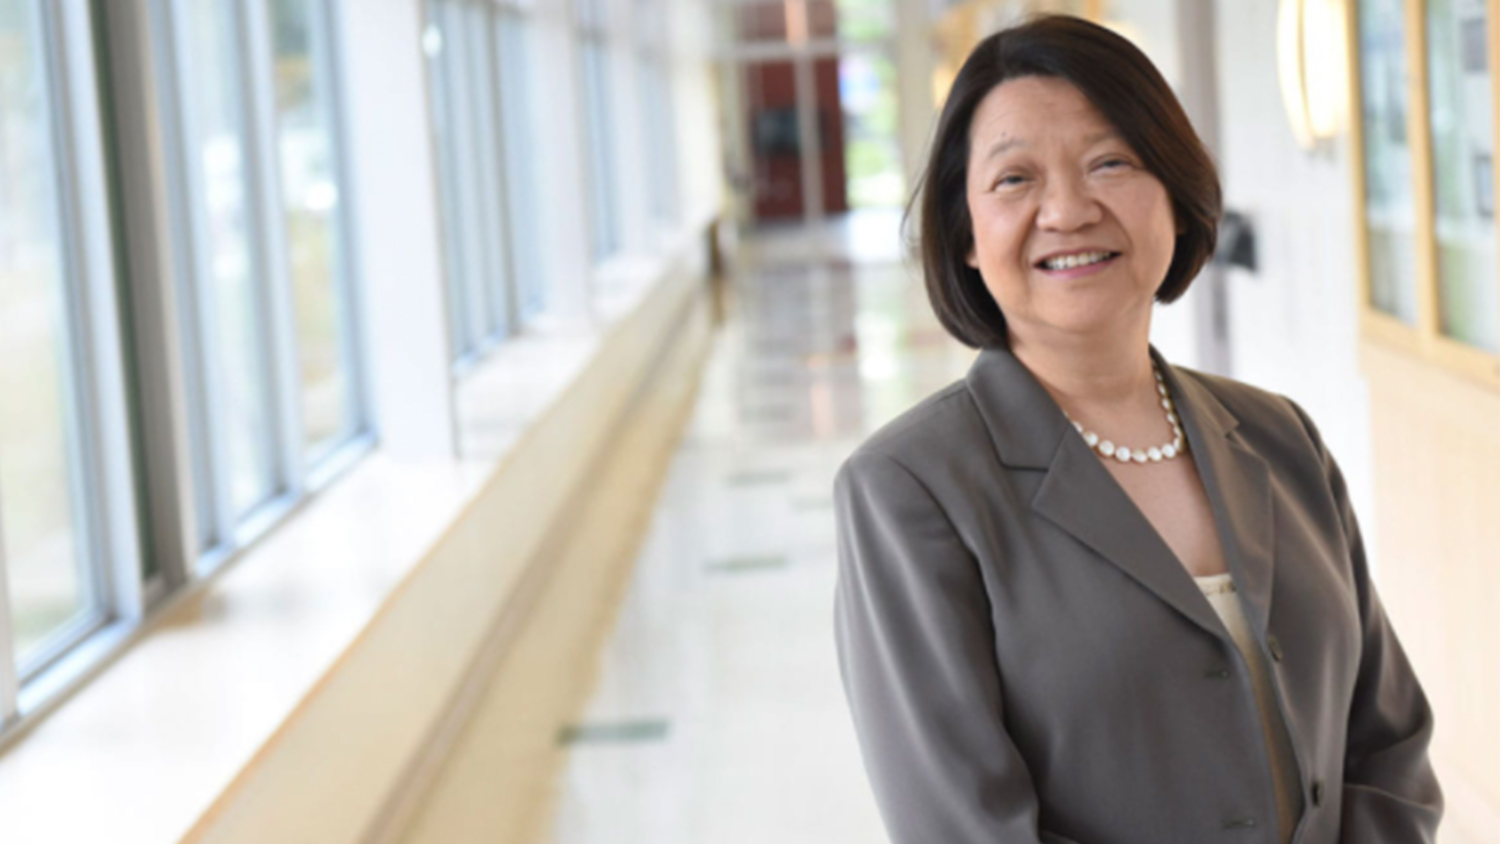 Pam Eddinger, Ph.D., delivered the 2020 Dallas Herring Lecture hosted by the NC State College of Education's Belk Center for Community College Leadership and Research